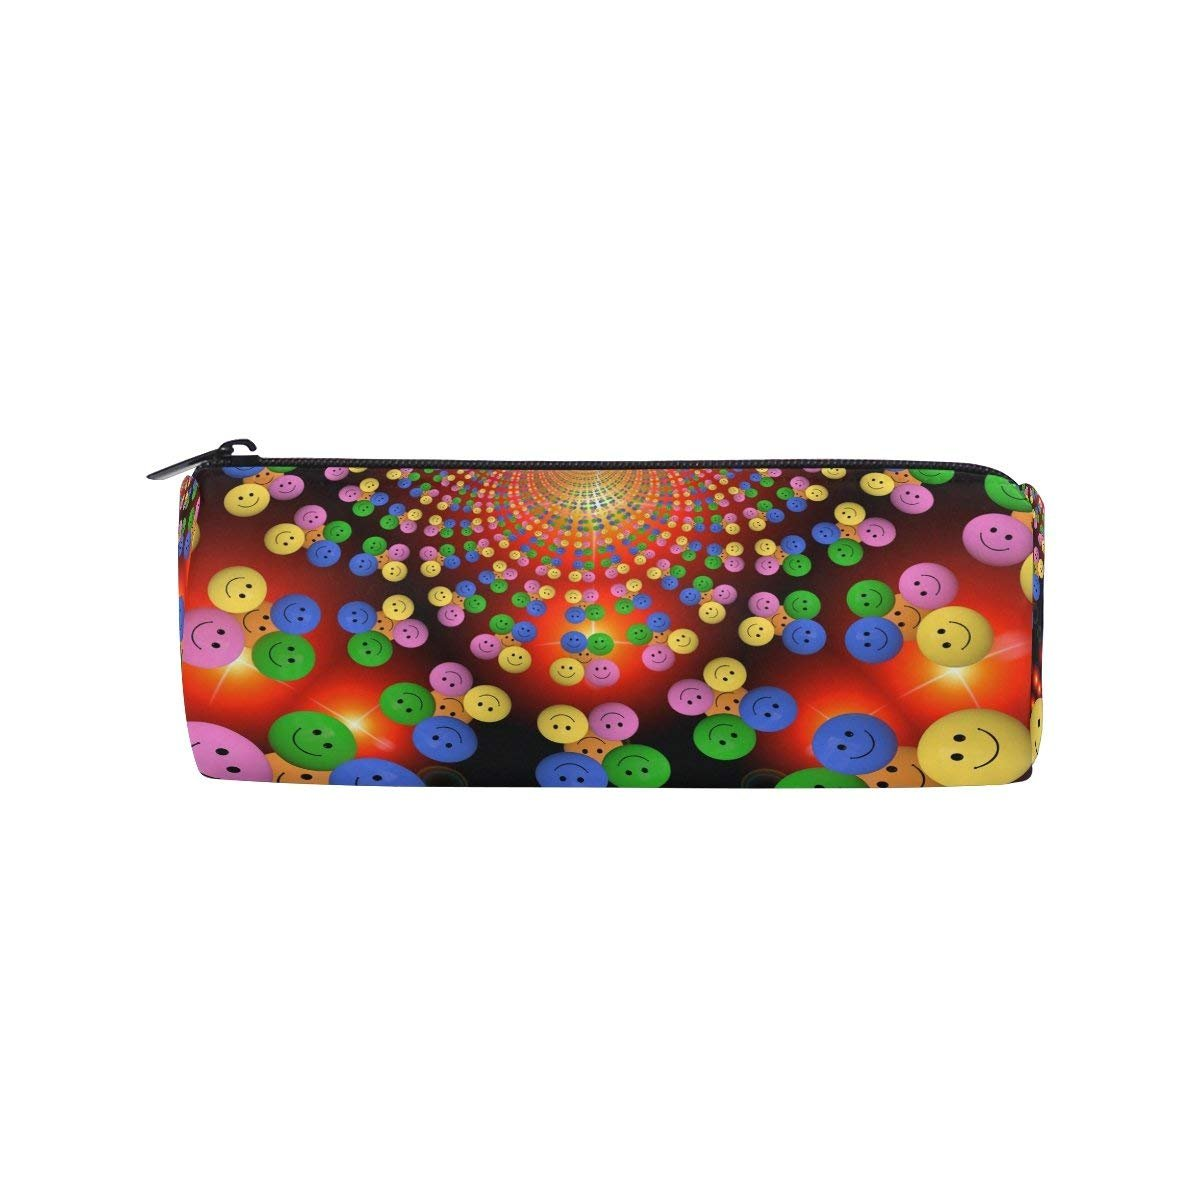 Love Heart Round Pencil Case Stationery Bag Zipper Pouch Pencil Holder by Beauty (Image #1)